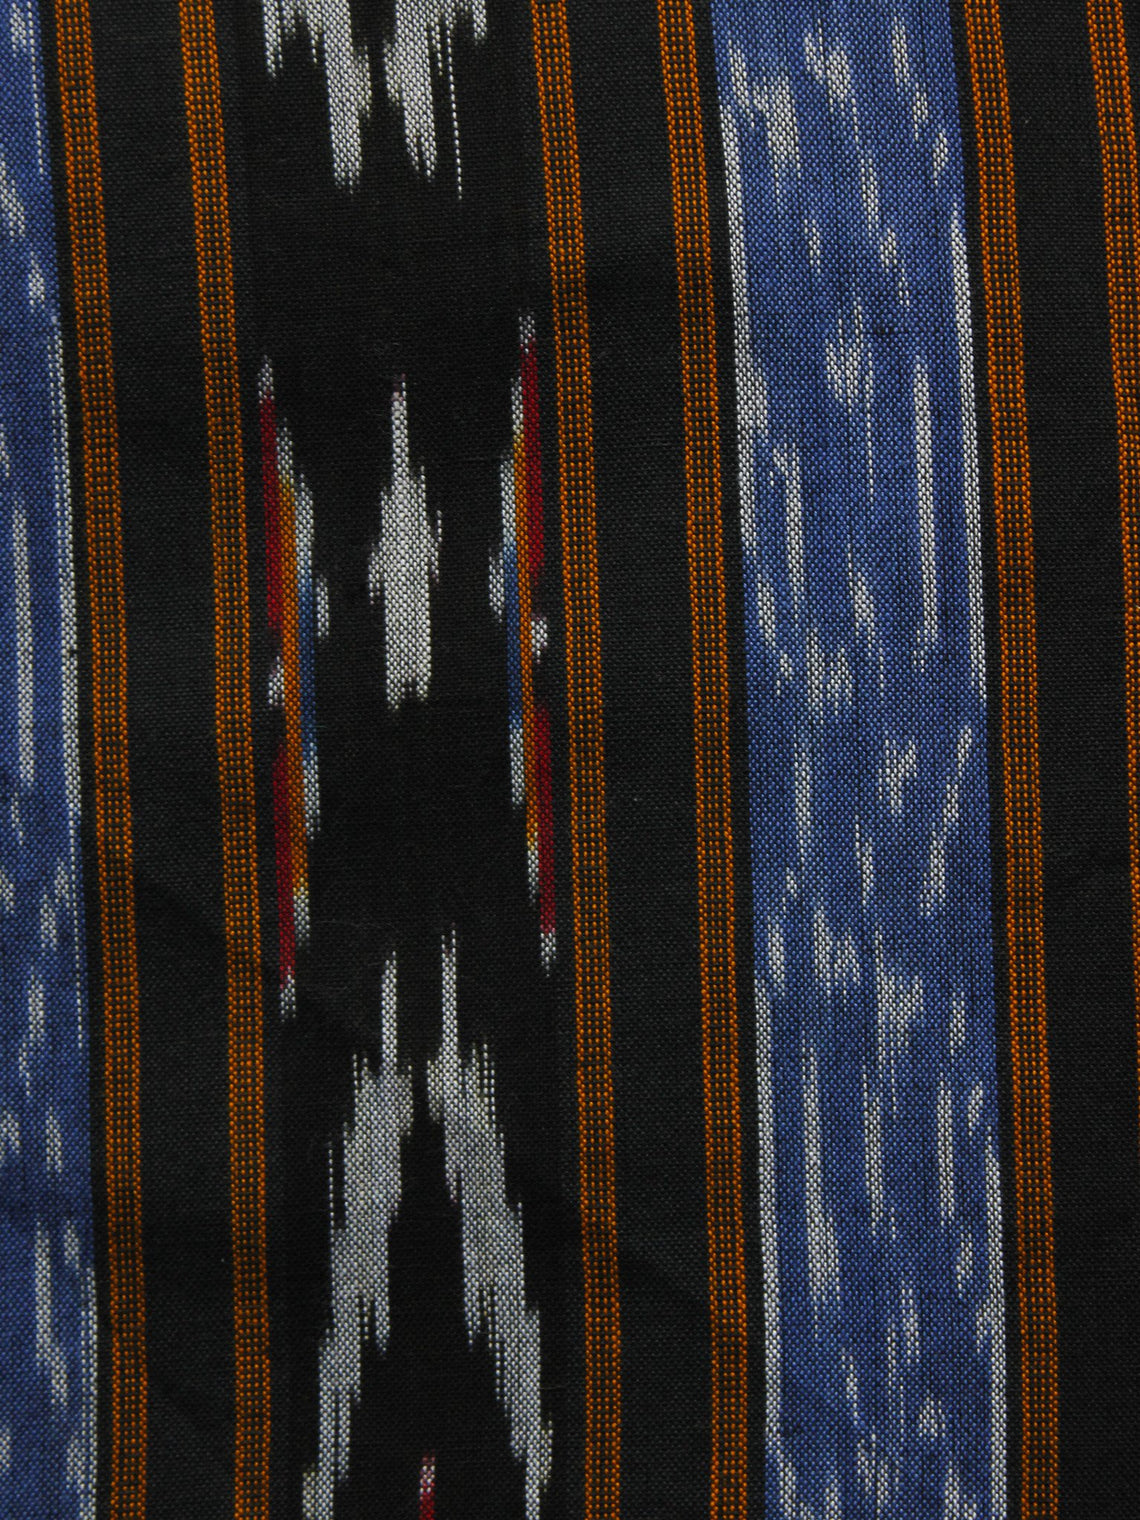 Blue Black Orange White Pochampally Hand Woven Ikat Fabric Per Meter - F002F929